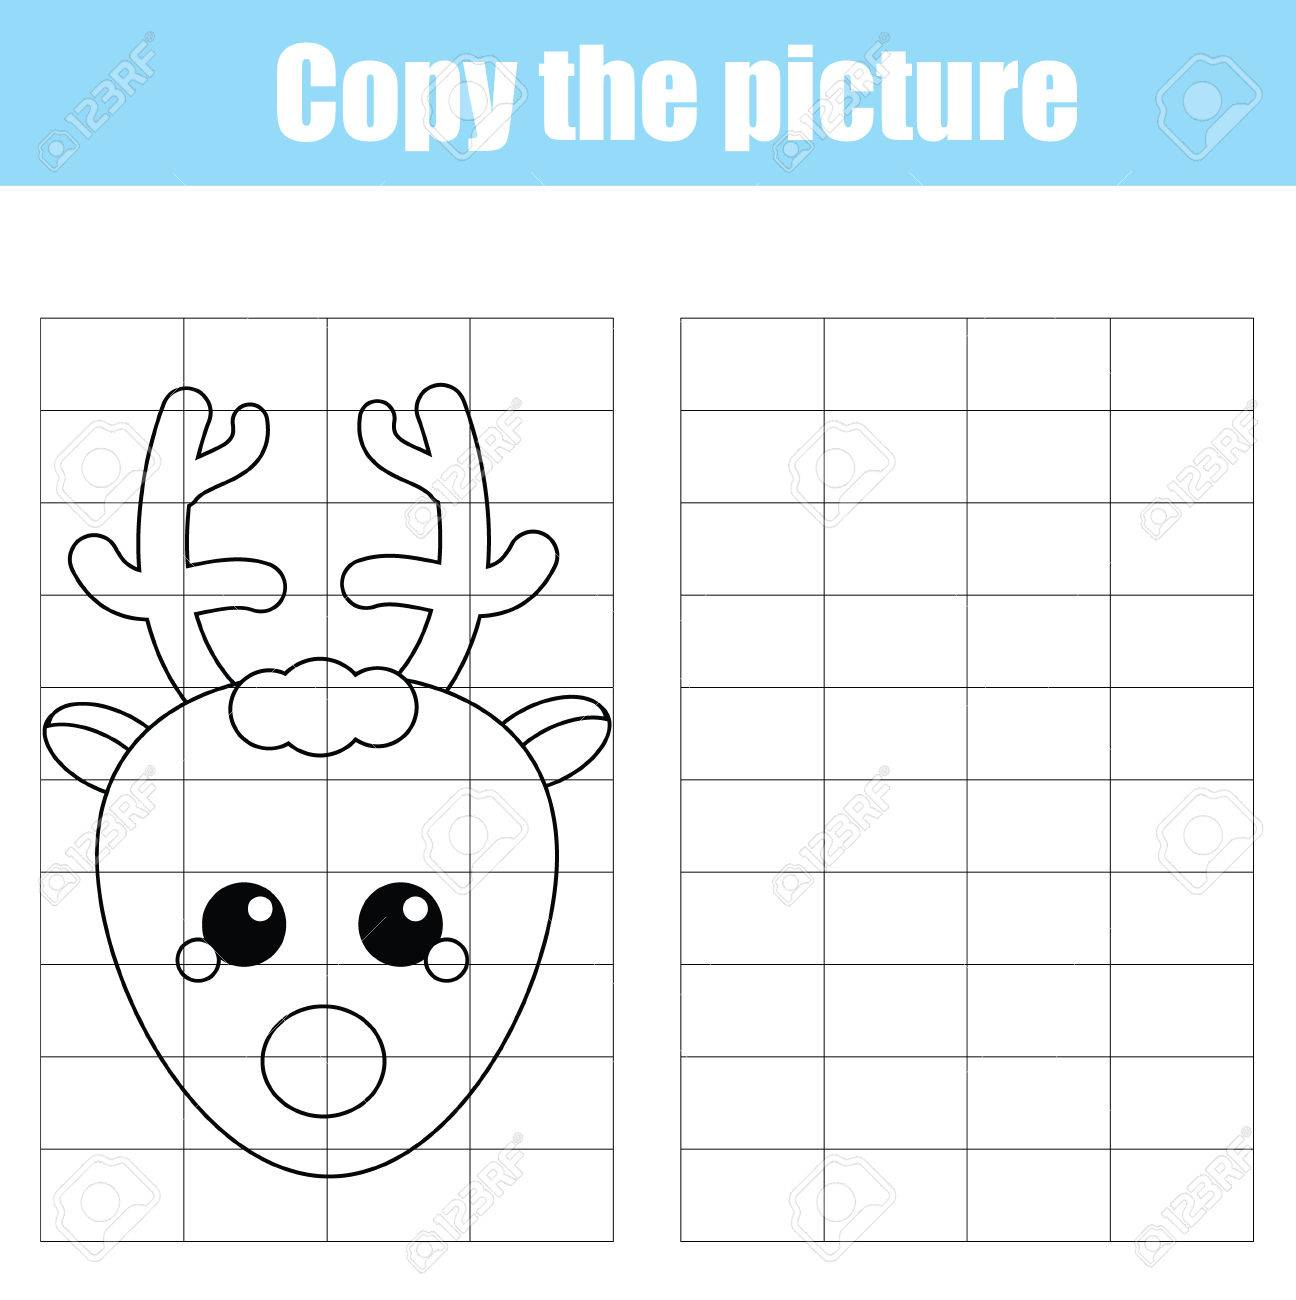 1296x1300 Copy The Picture Using A Grid Children Educational Drawing Game